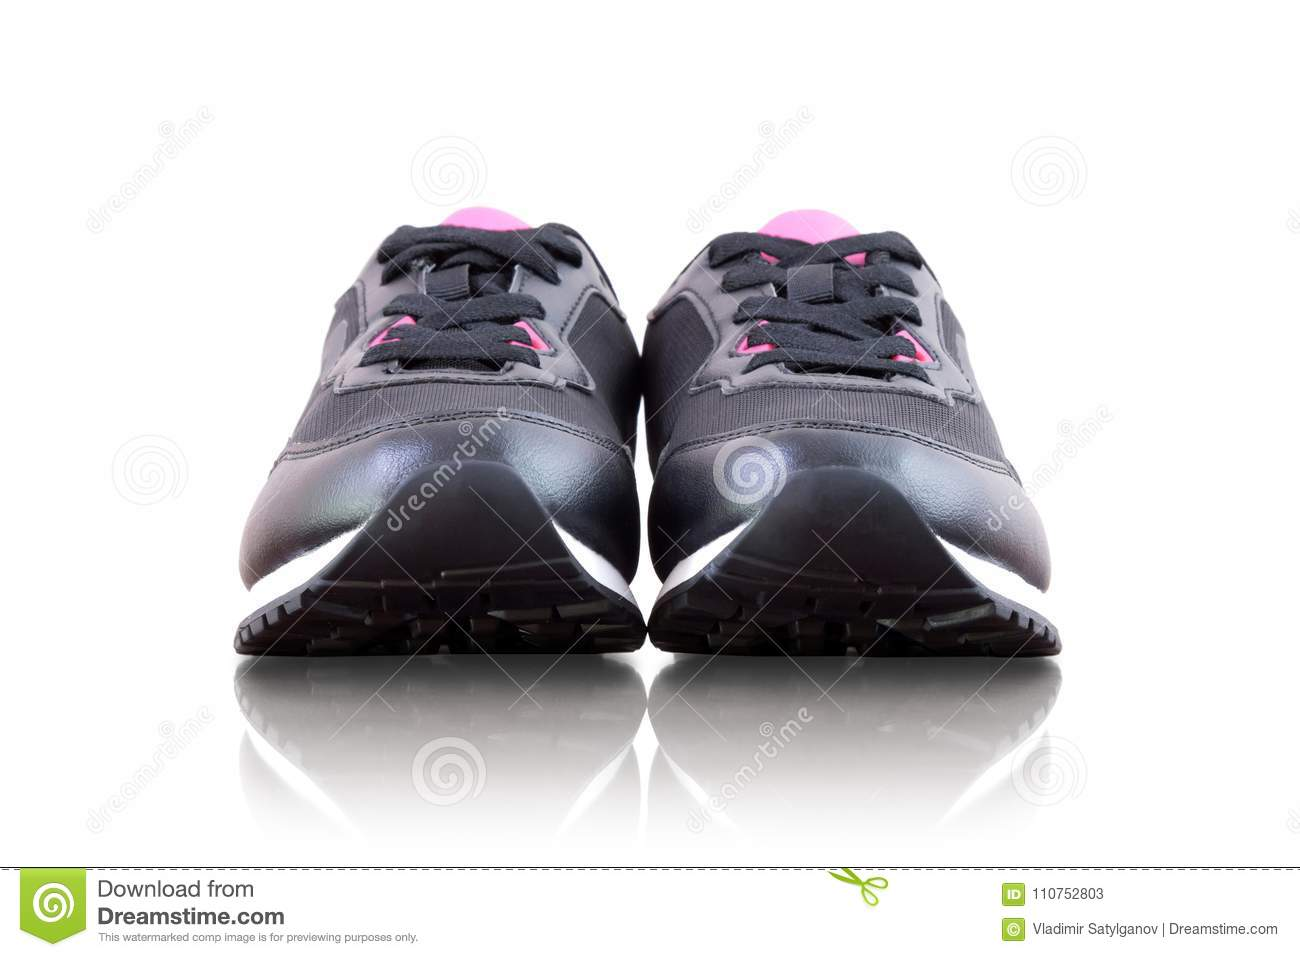 b78bd227 Black sneakers stock image. Image of healthy, exercise - 110752803